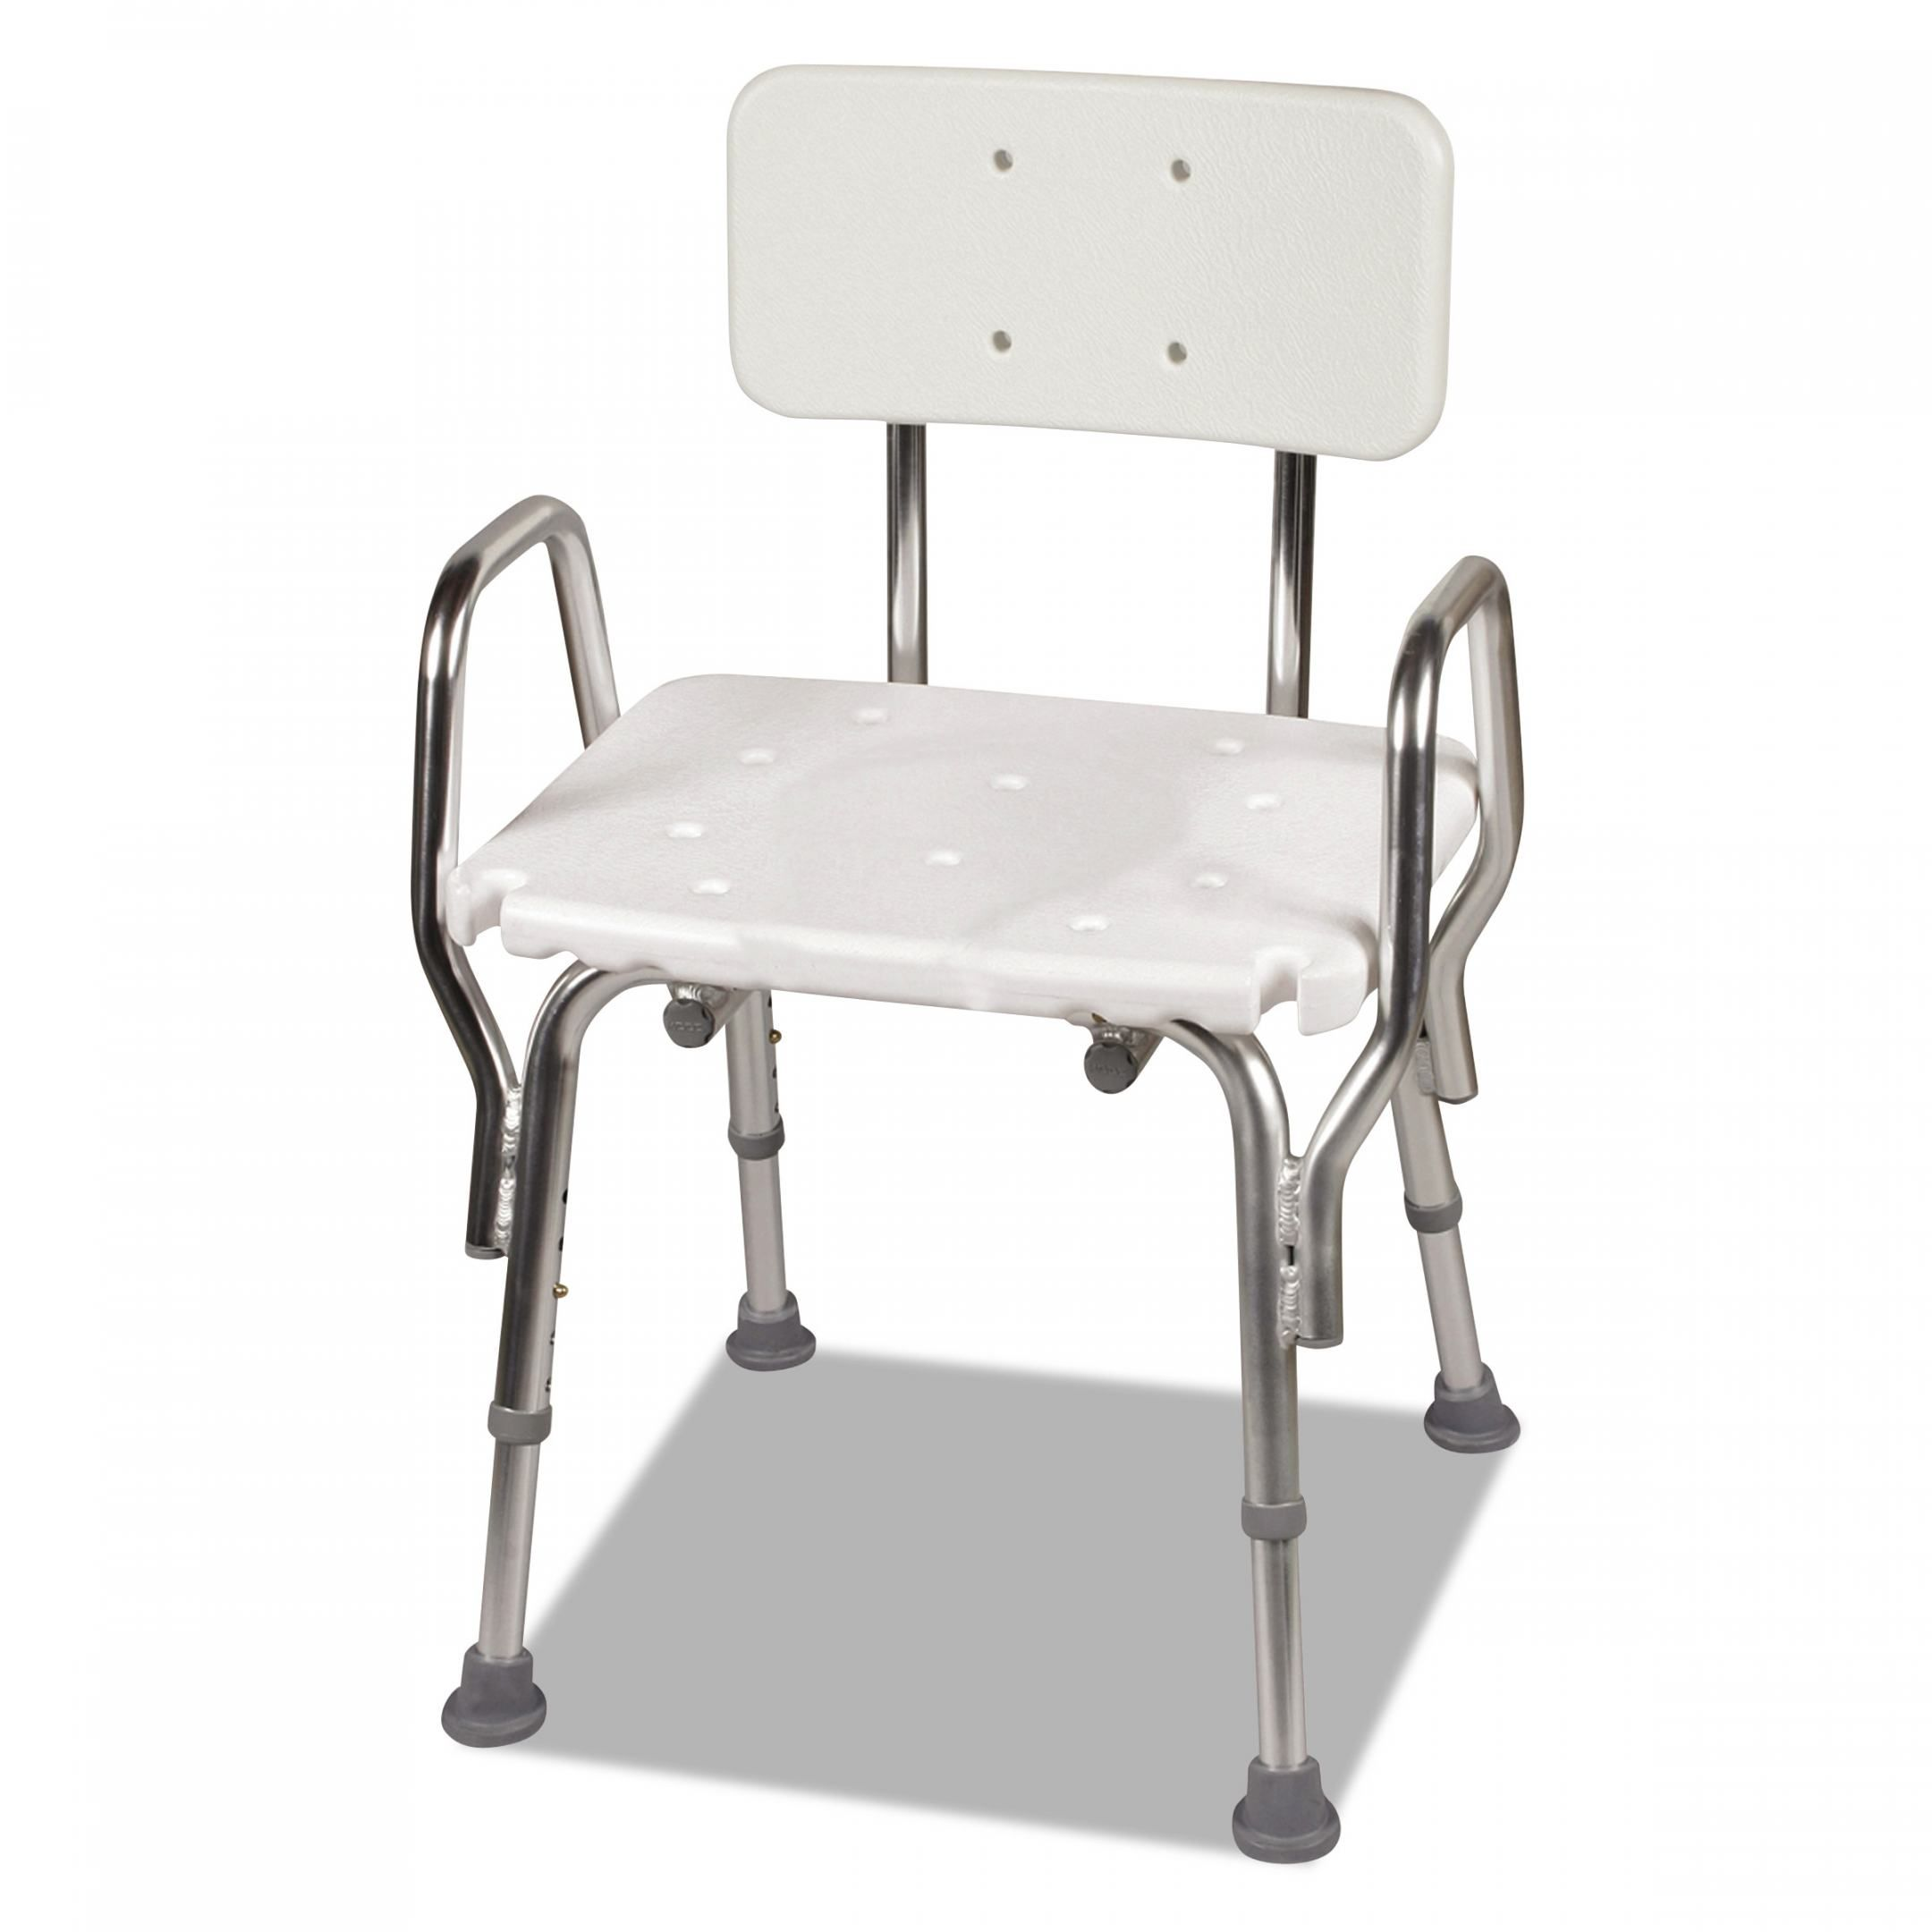 Bath Chair For Elderly Dusche Stuhle Bad